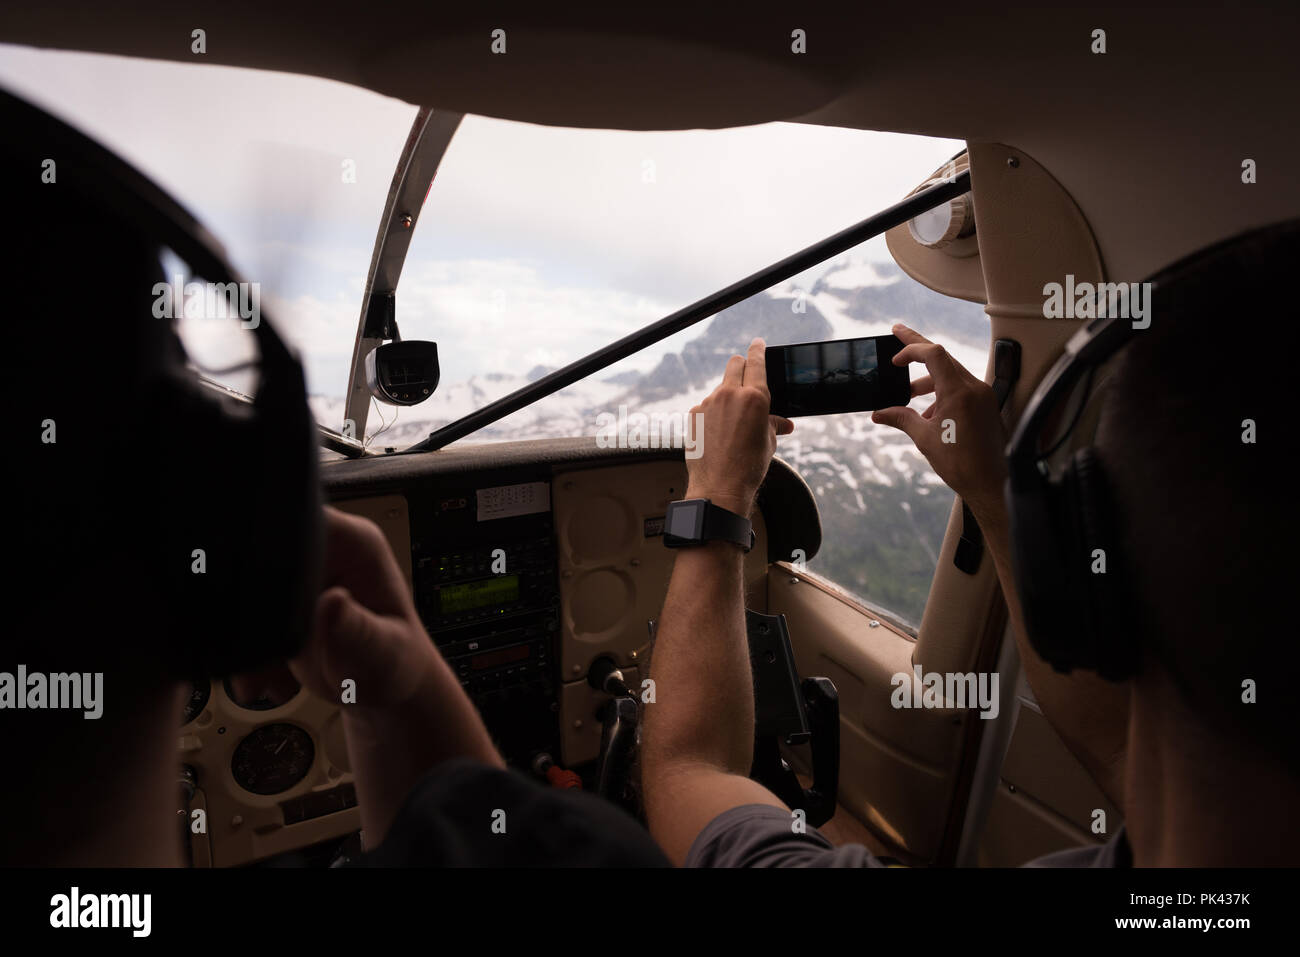 Pilot taking photos with mobile phone while flying - Stock Image